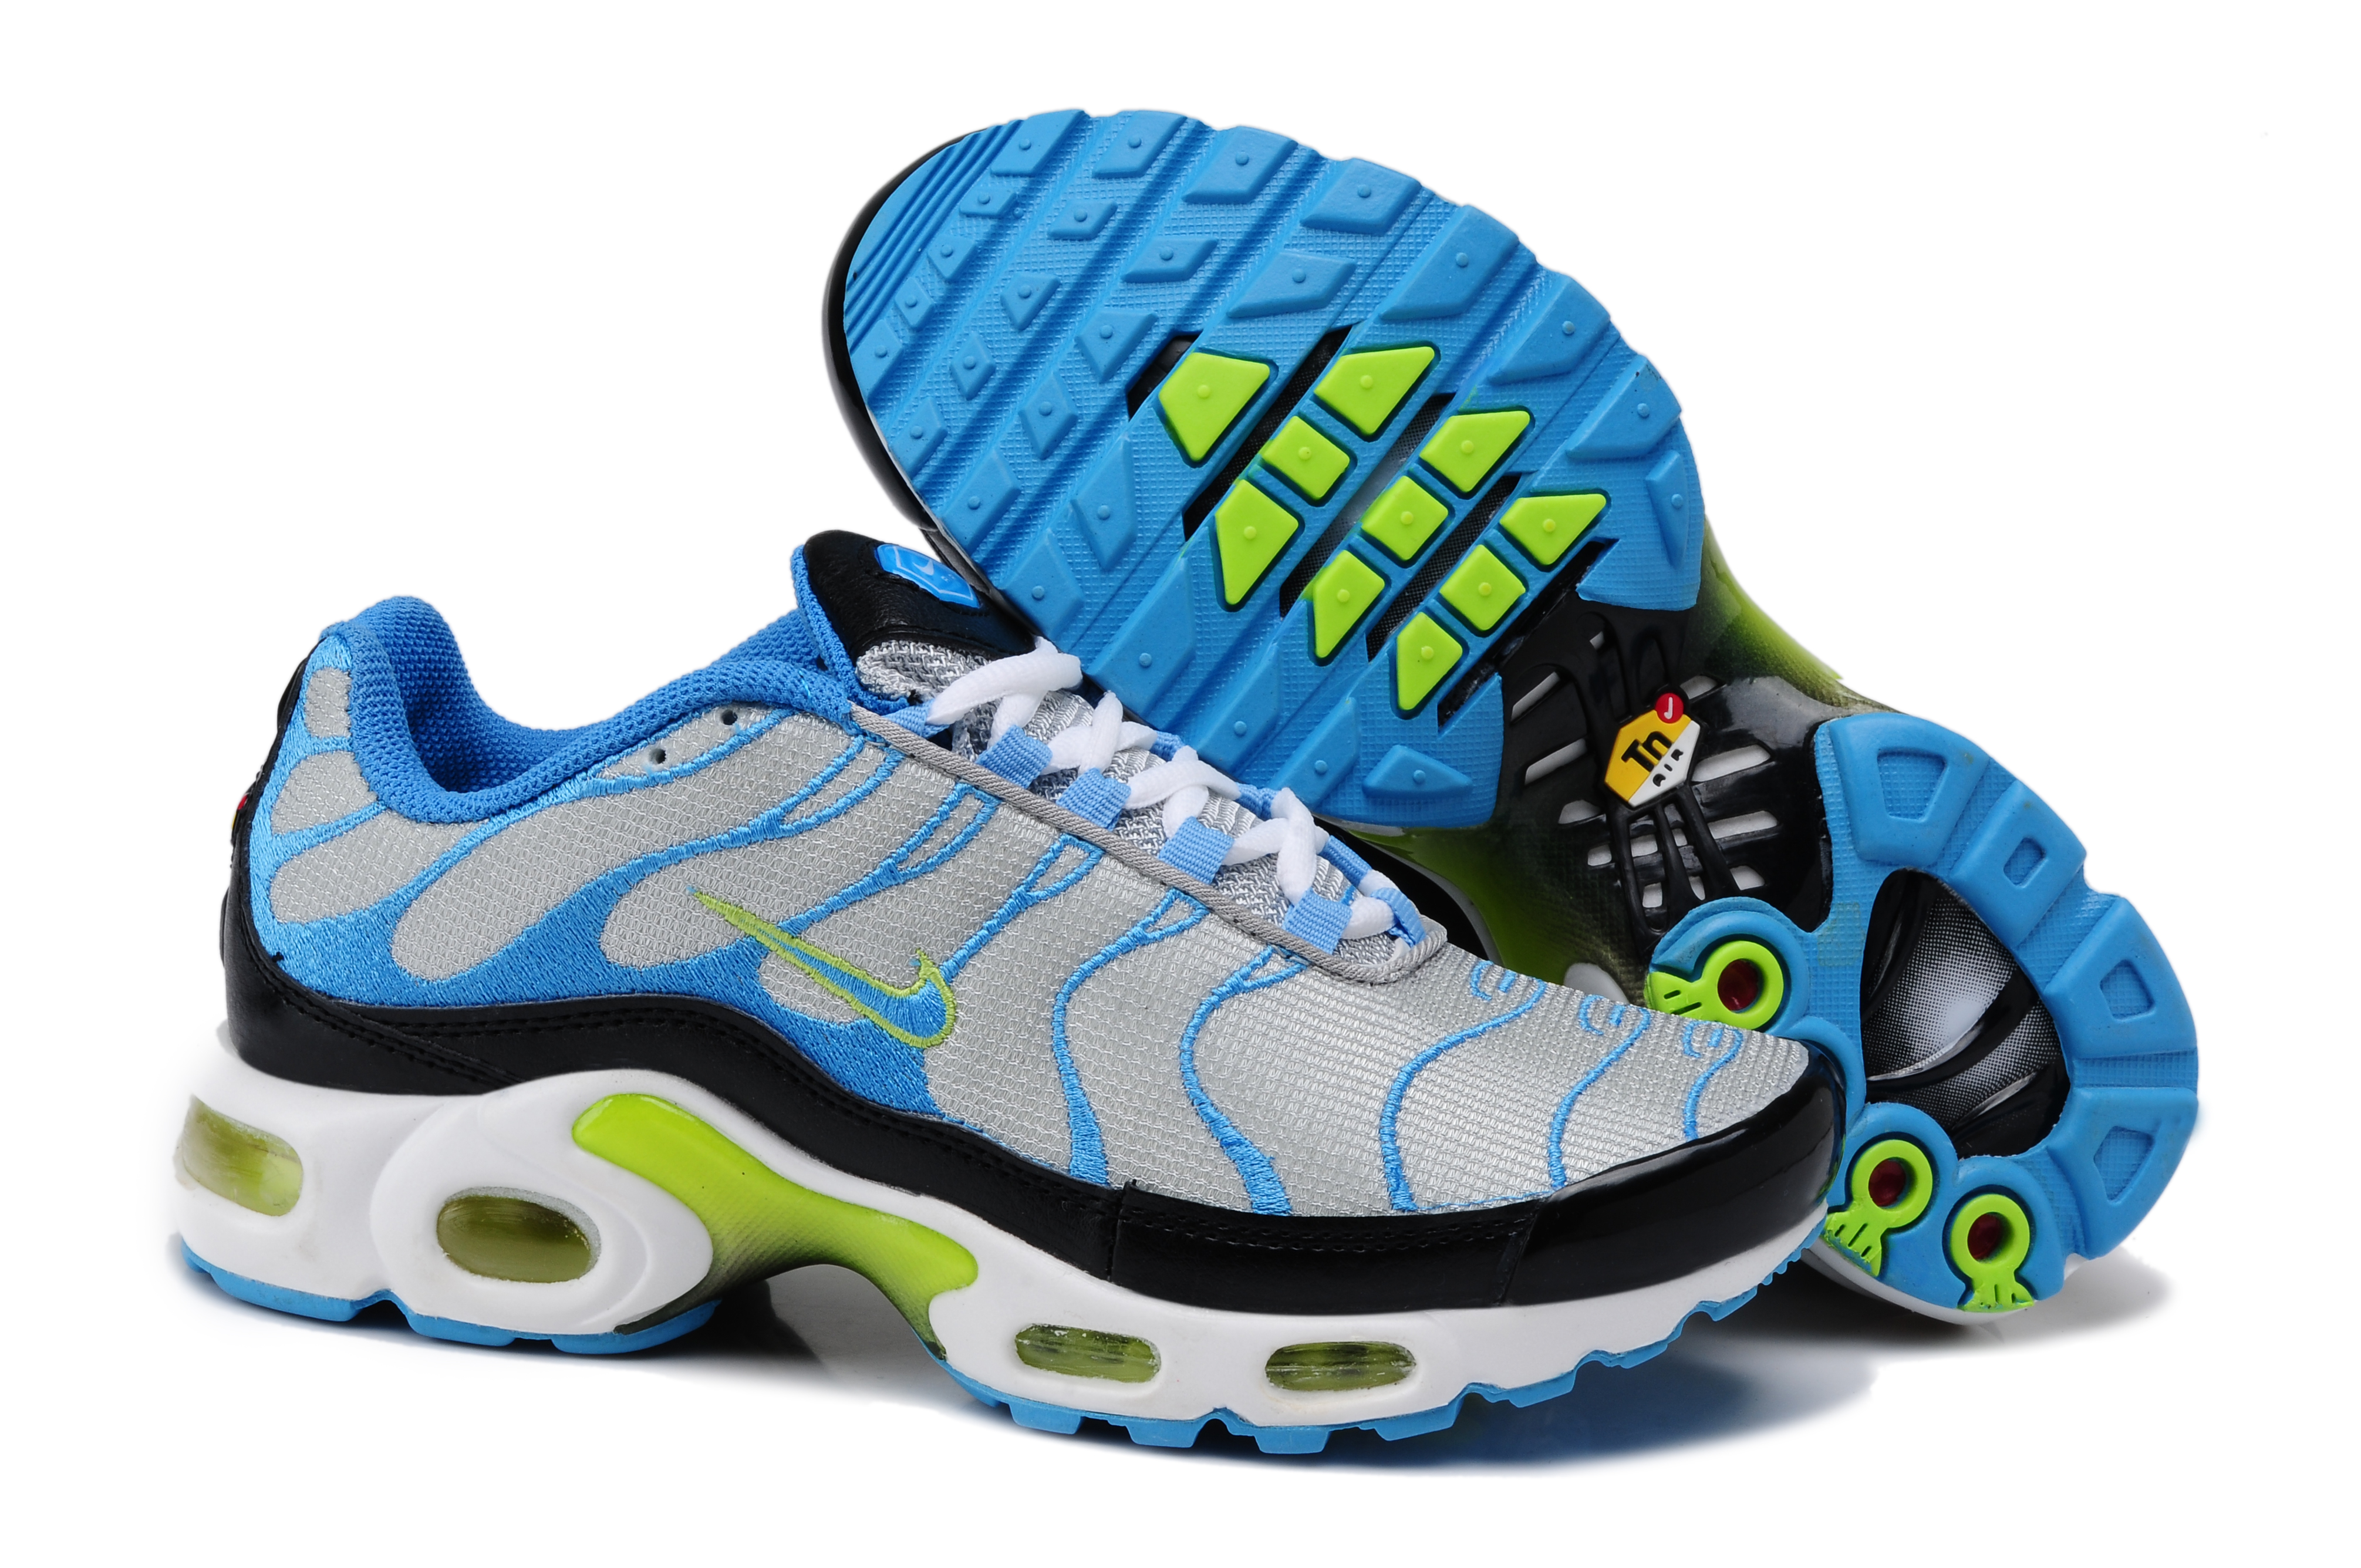 Nike TN 2016 Femme Homme tn Requin Nouveaux Femme chaussures nike air max 2011 nike tn classic